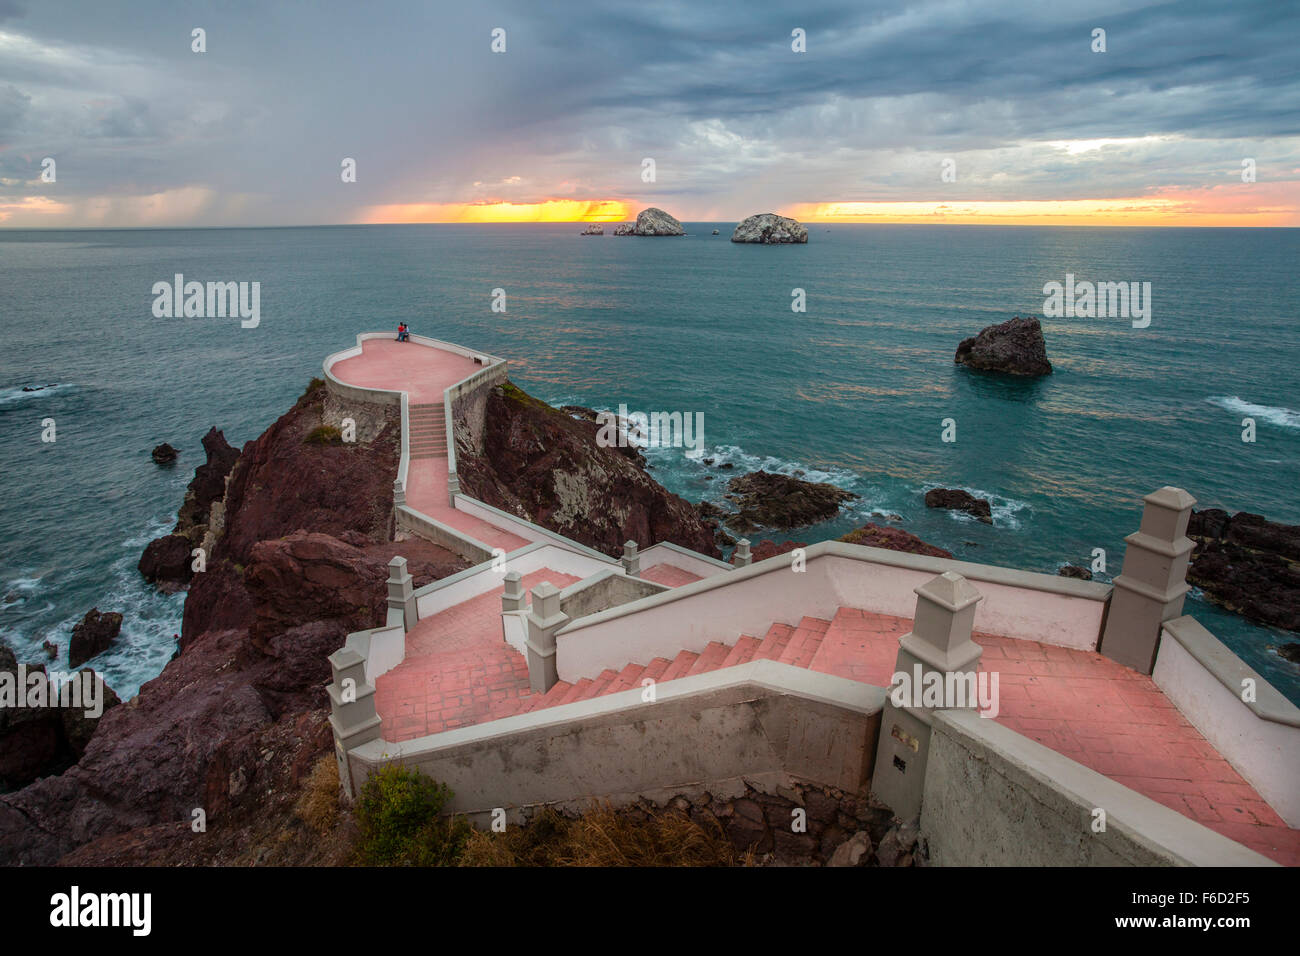 Sunset from the lookout near the lighthouse in Mazatlan, Sinaloa, Mexico. - Stock Image